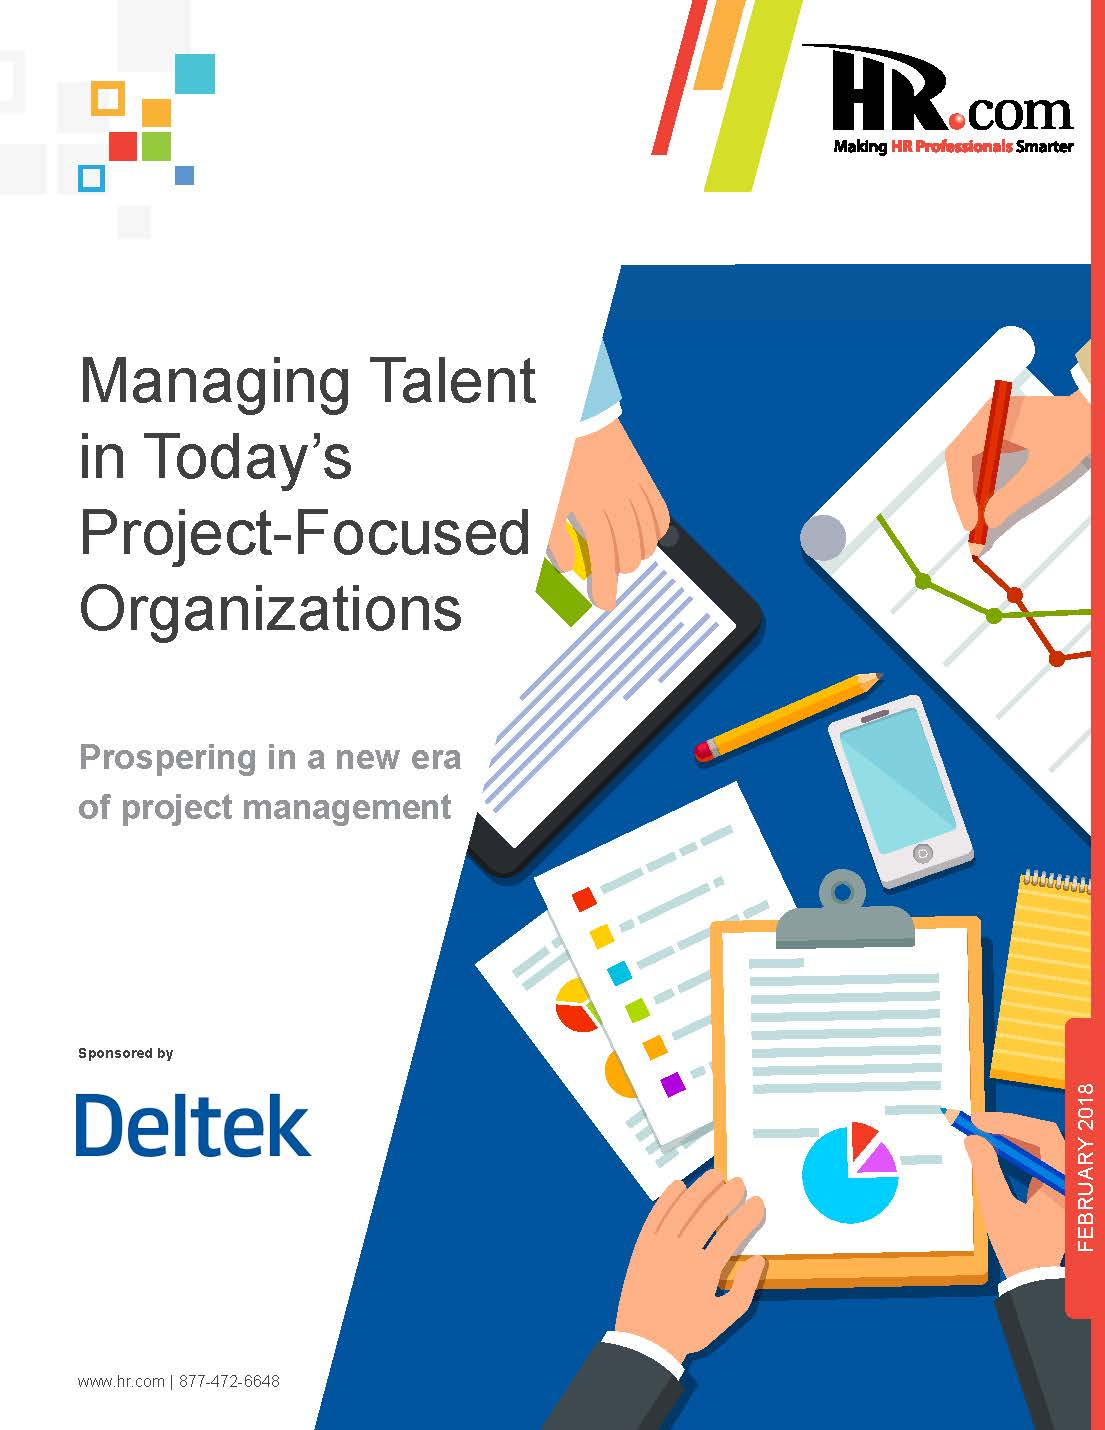 Managing Talent in Today's Project-Focused Organizations